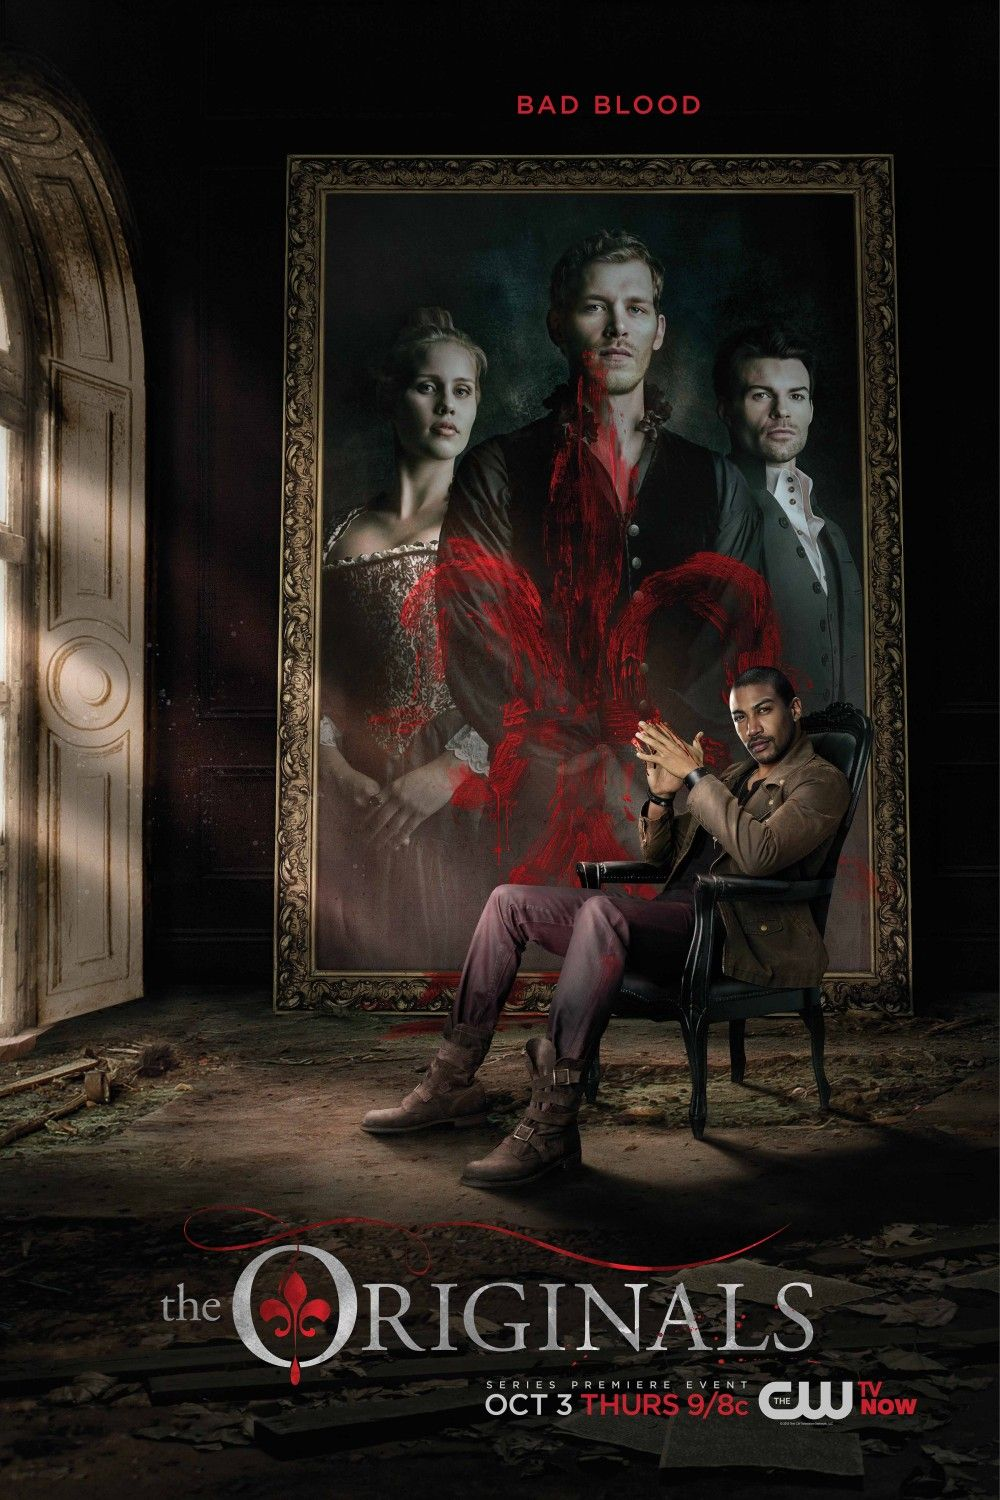 The Originals Season 5 COMPLETE WEBRip 480p & 1080p